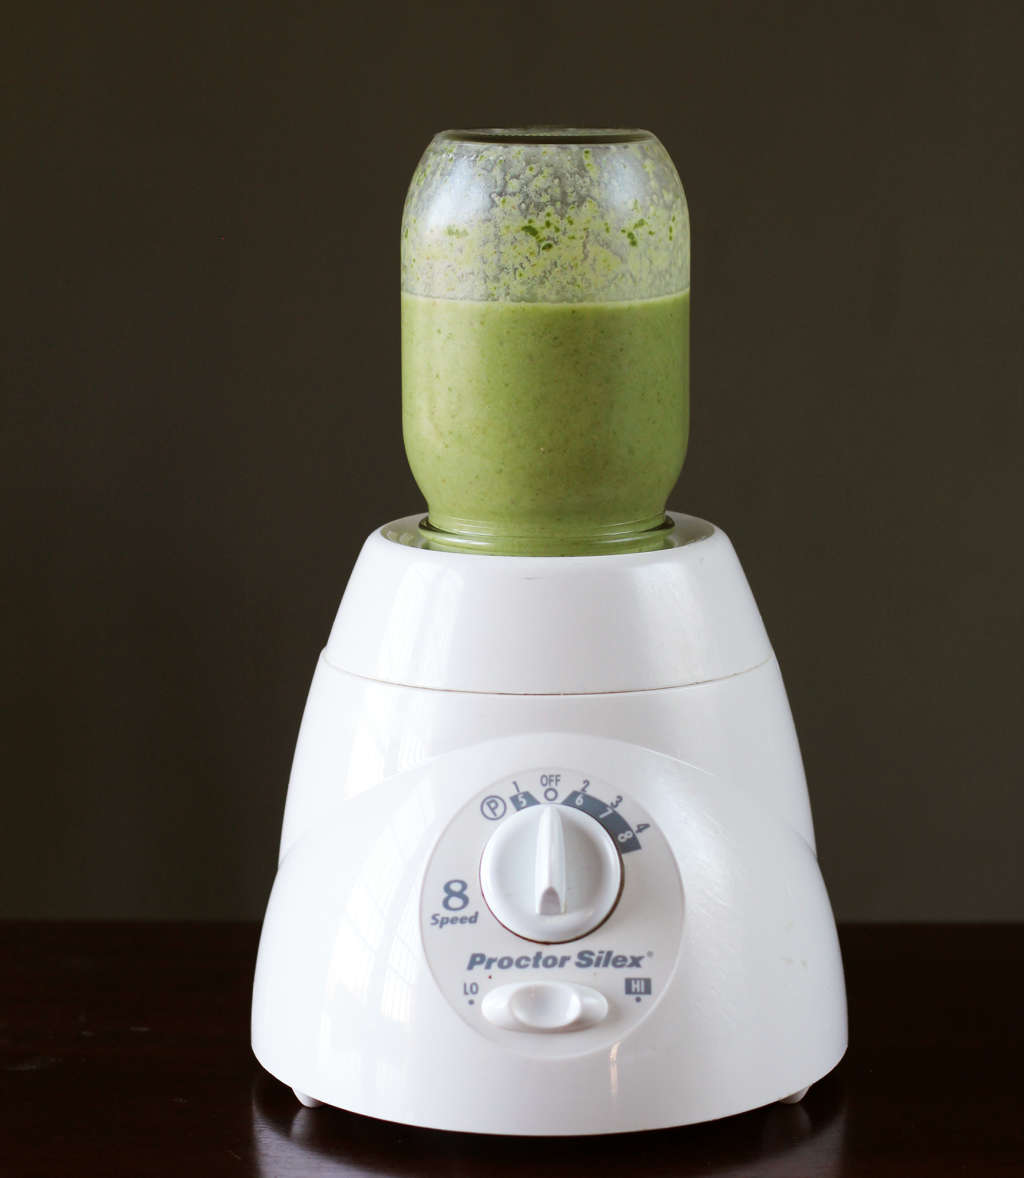 The Mason Jar Blender Trick: Do You Know About This?